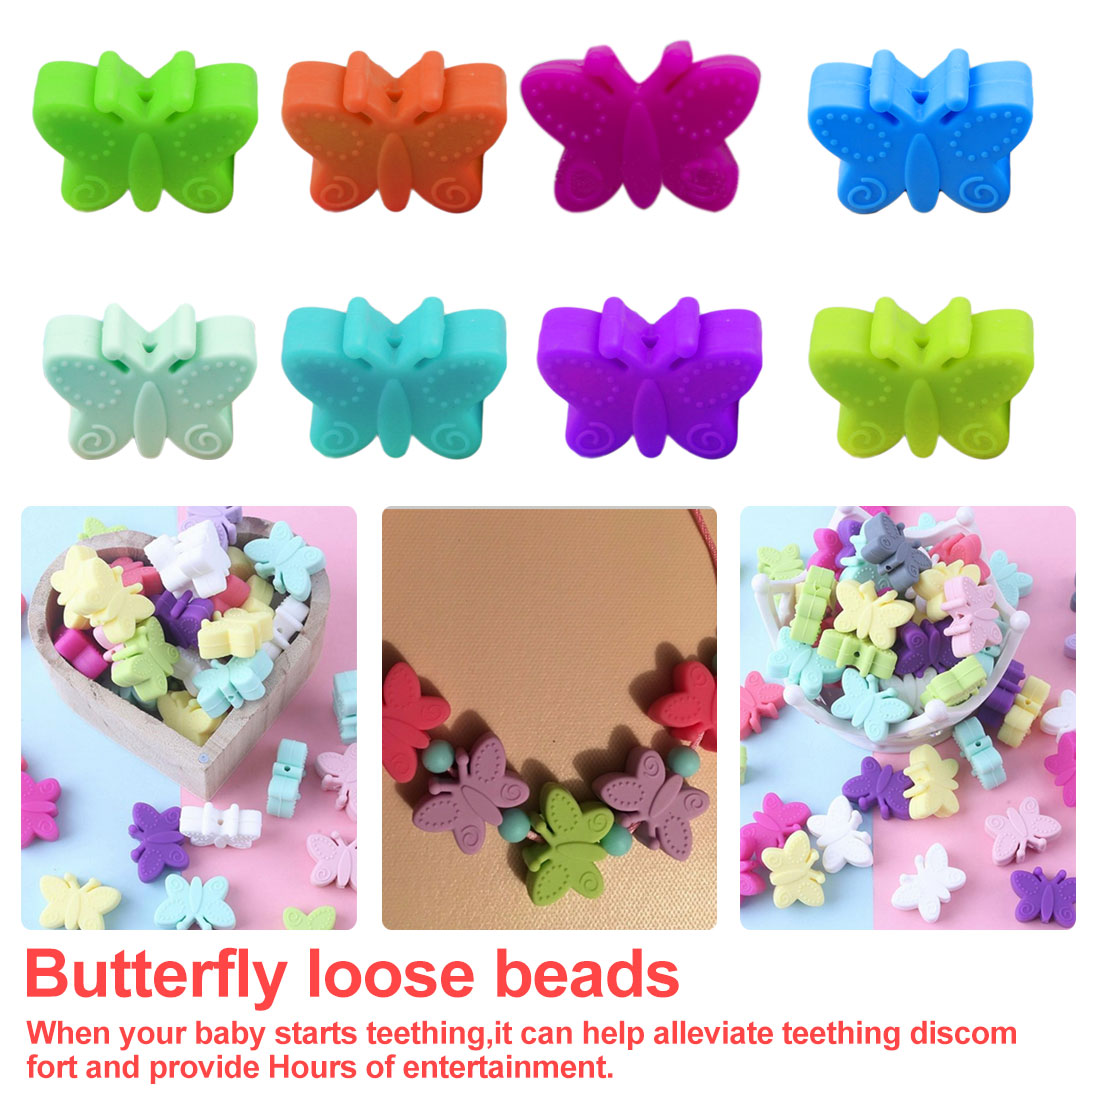 5pc Silicone Butterfly Beads BPA Free Teething DIY Bead Animal Silicone Bead For Pacifier Making Baby Teether Accessories